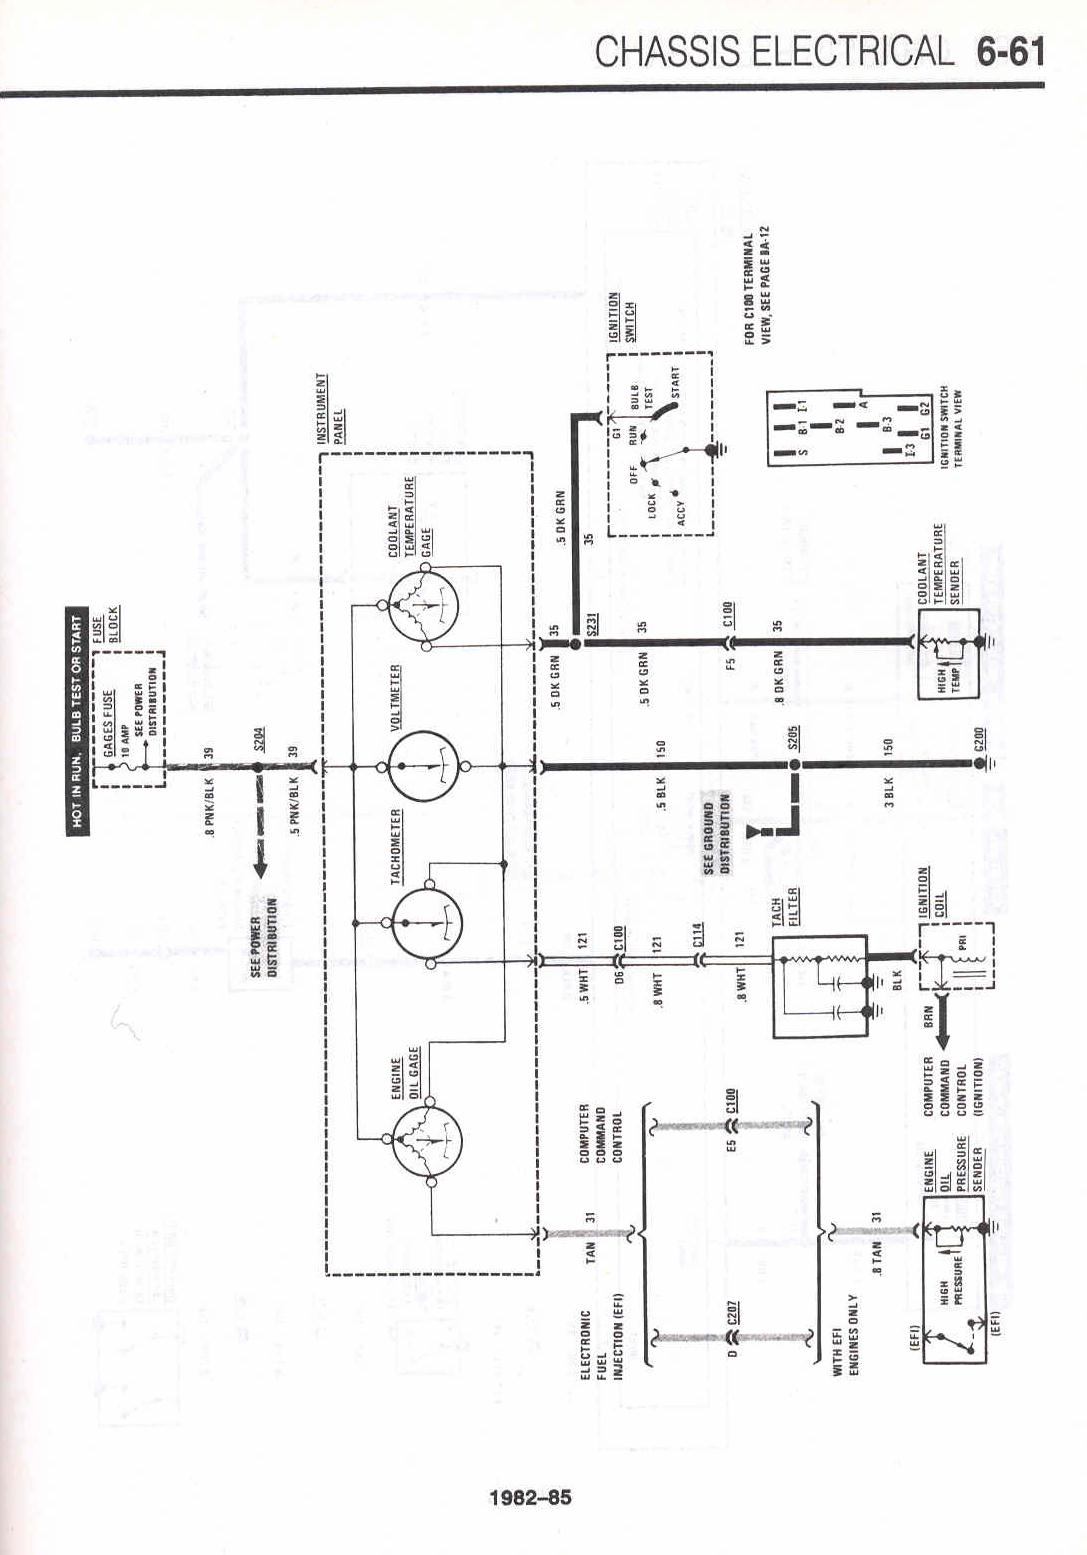 82 Camaro Wiring Diagram Schematic 2019 Engine Bay 92 Console Get Free Image About